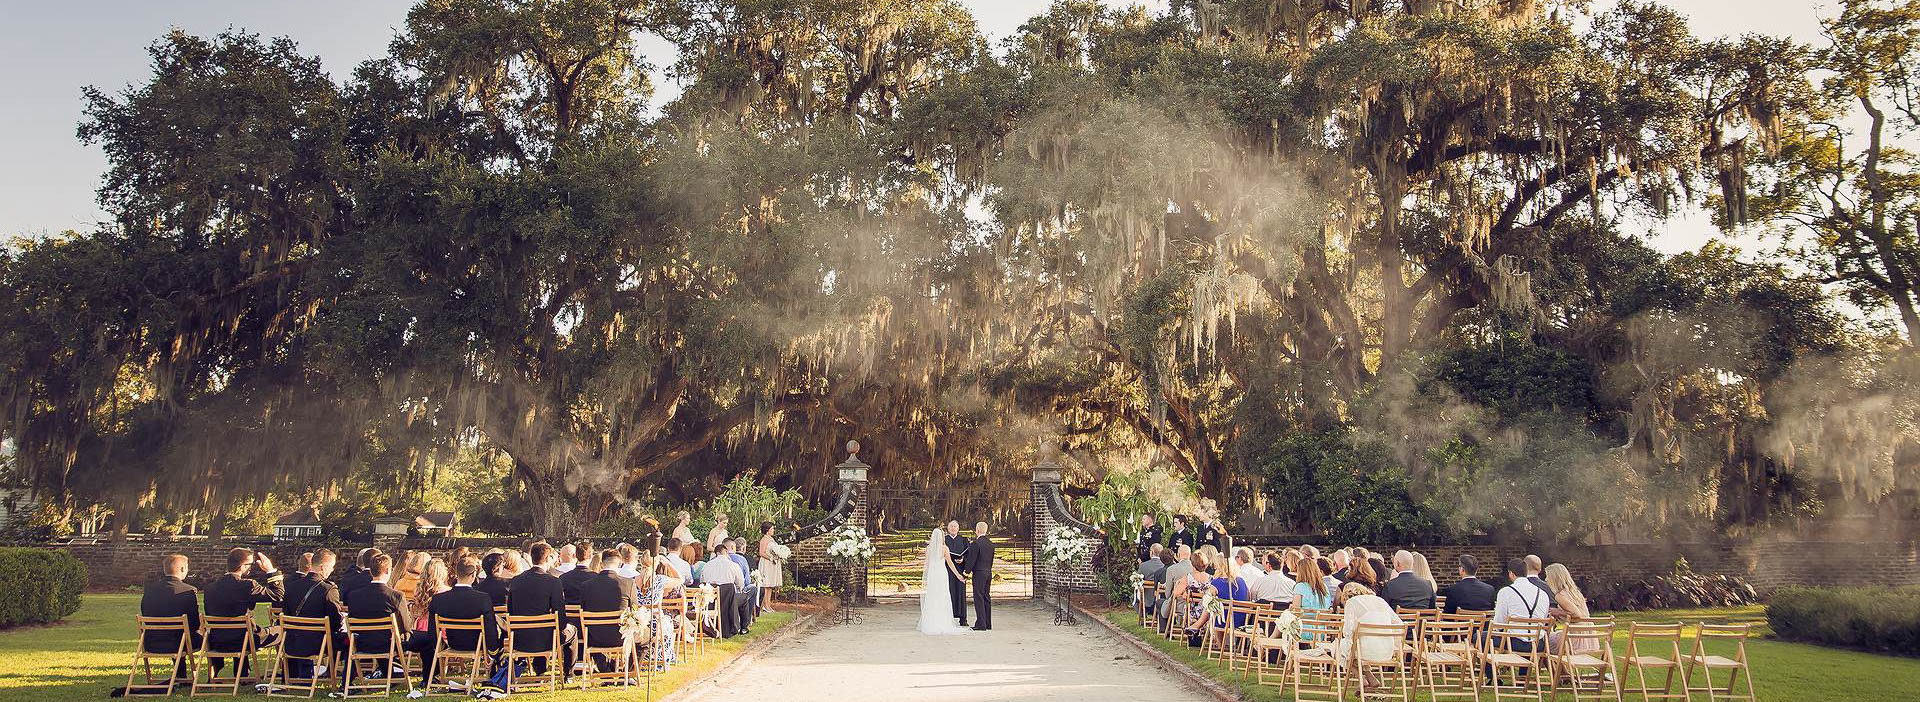 Boone Hall Plantation Ceremony Gate Wedding